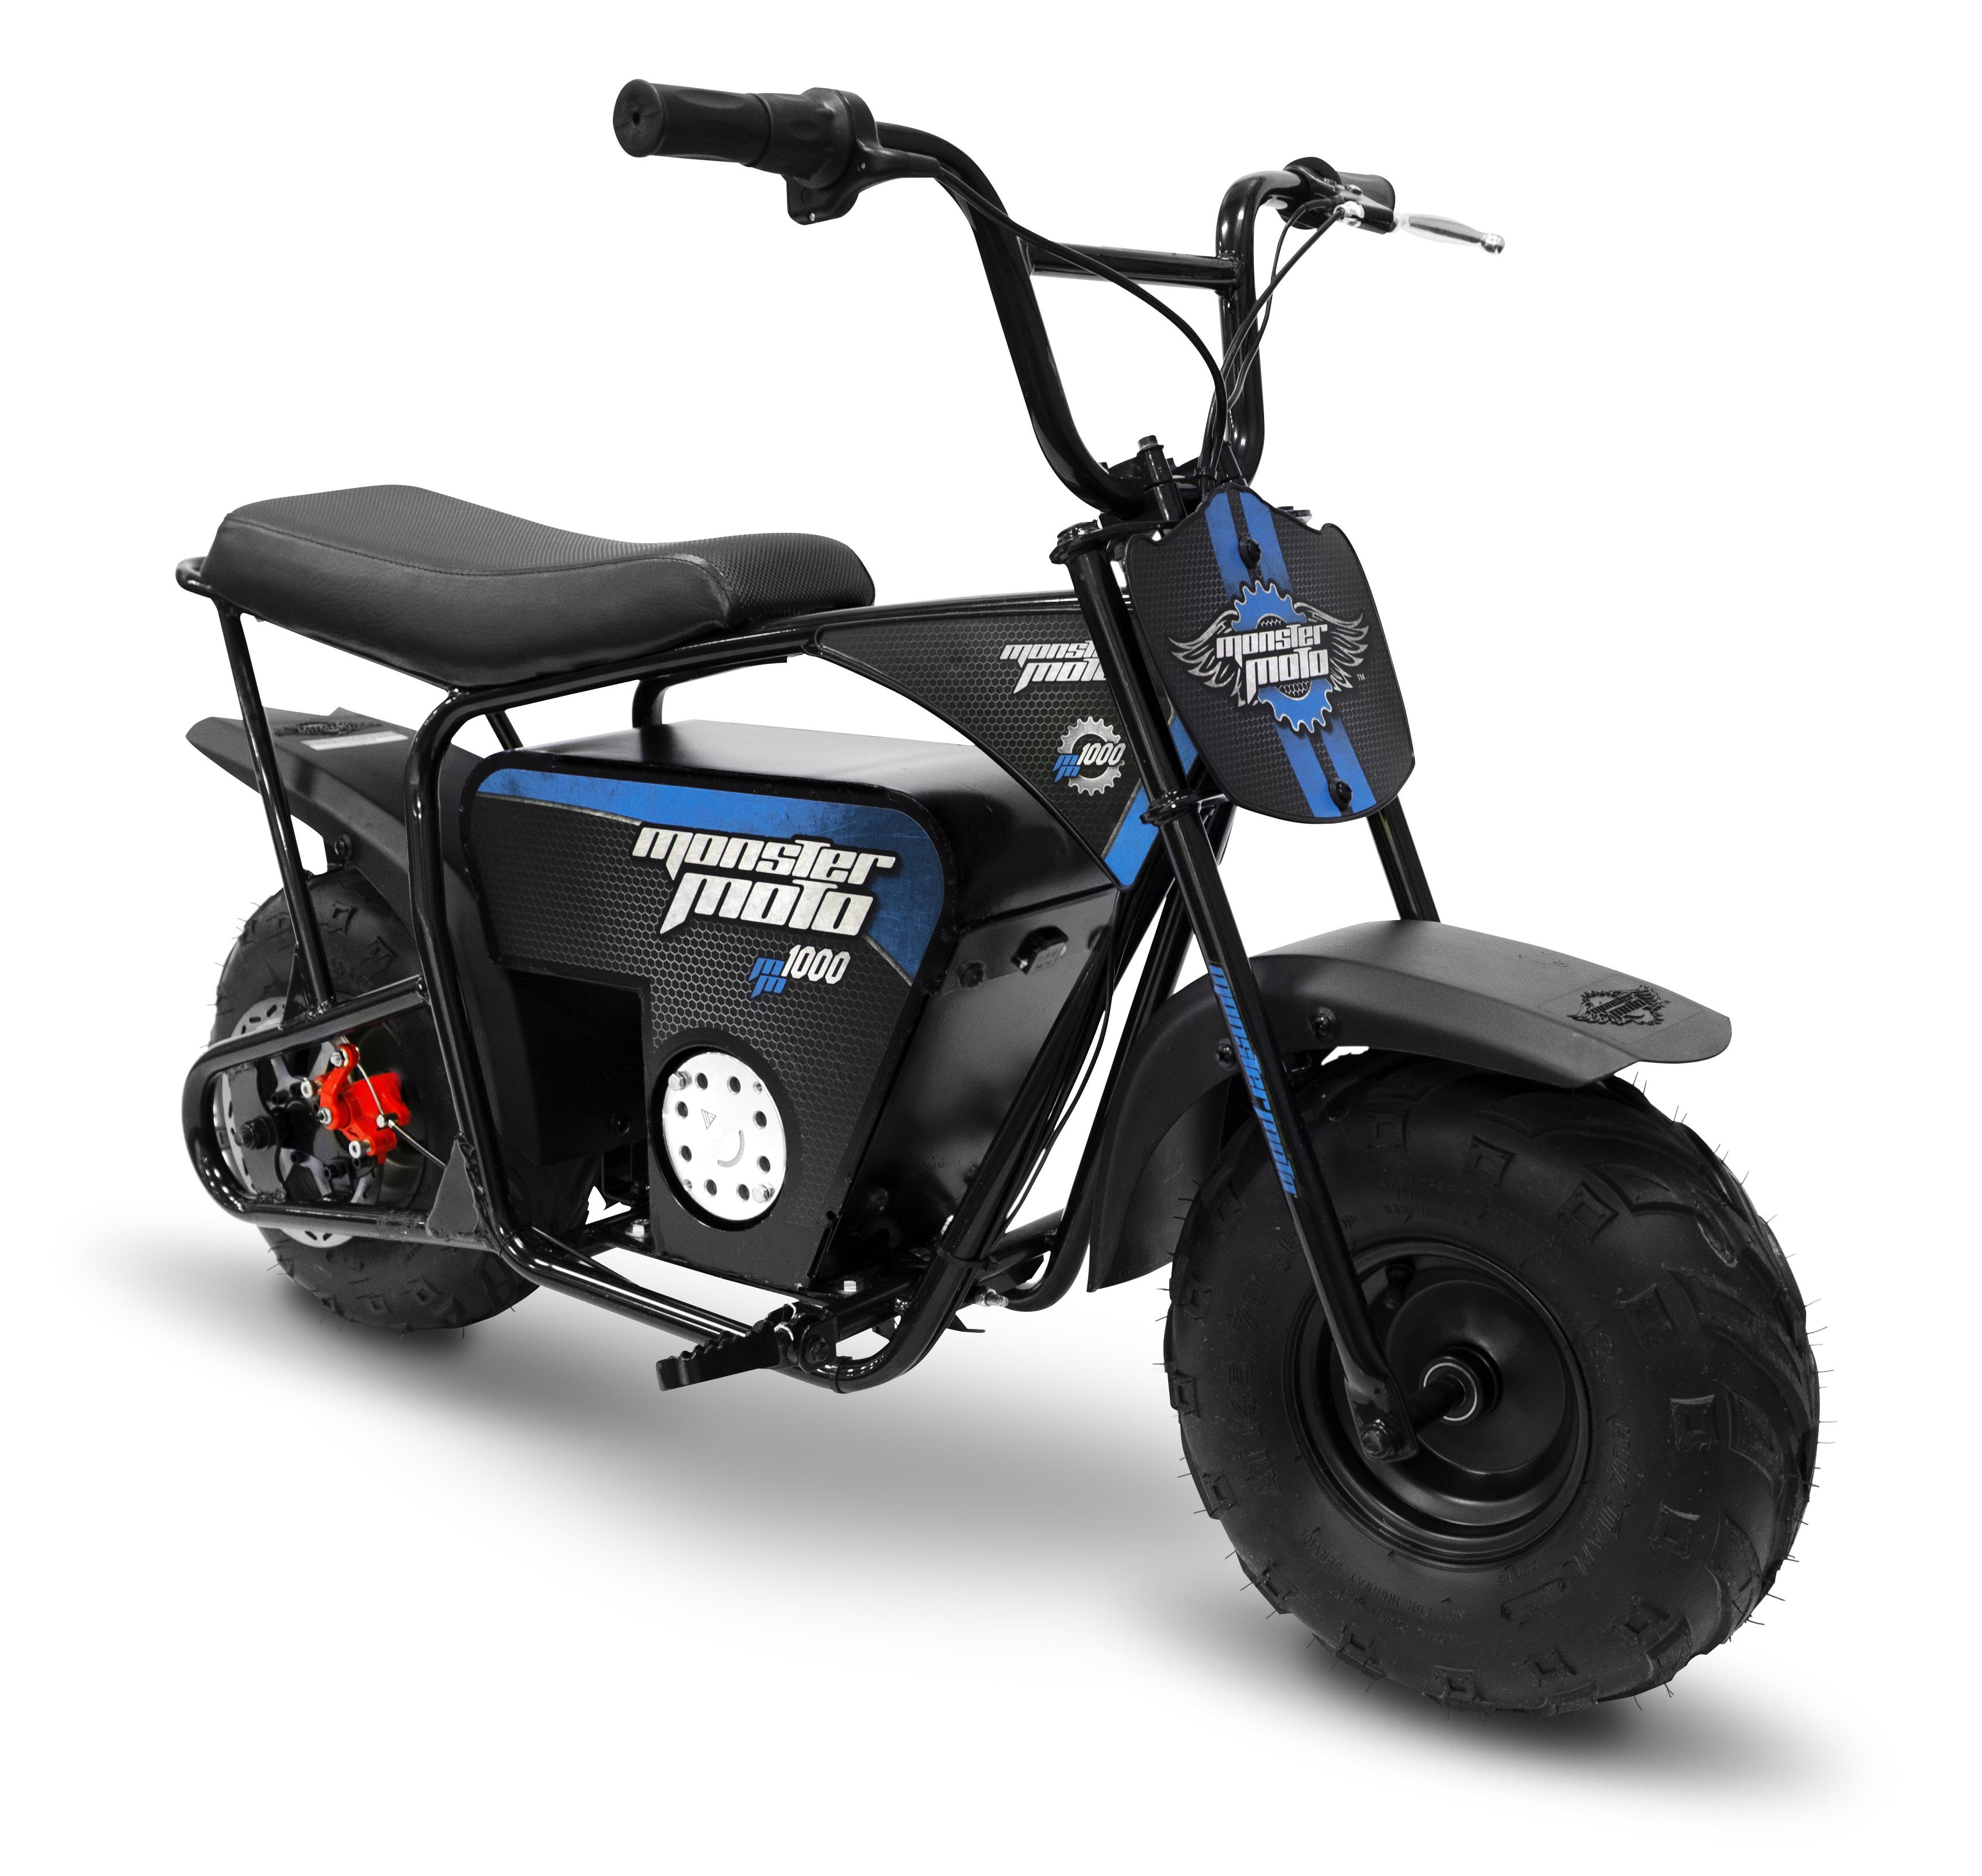 Monster Moto Electric Mini Bike 1000 Watts - Black with Blue Decals